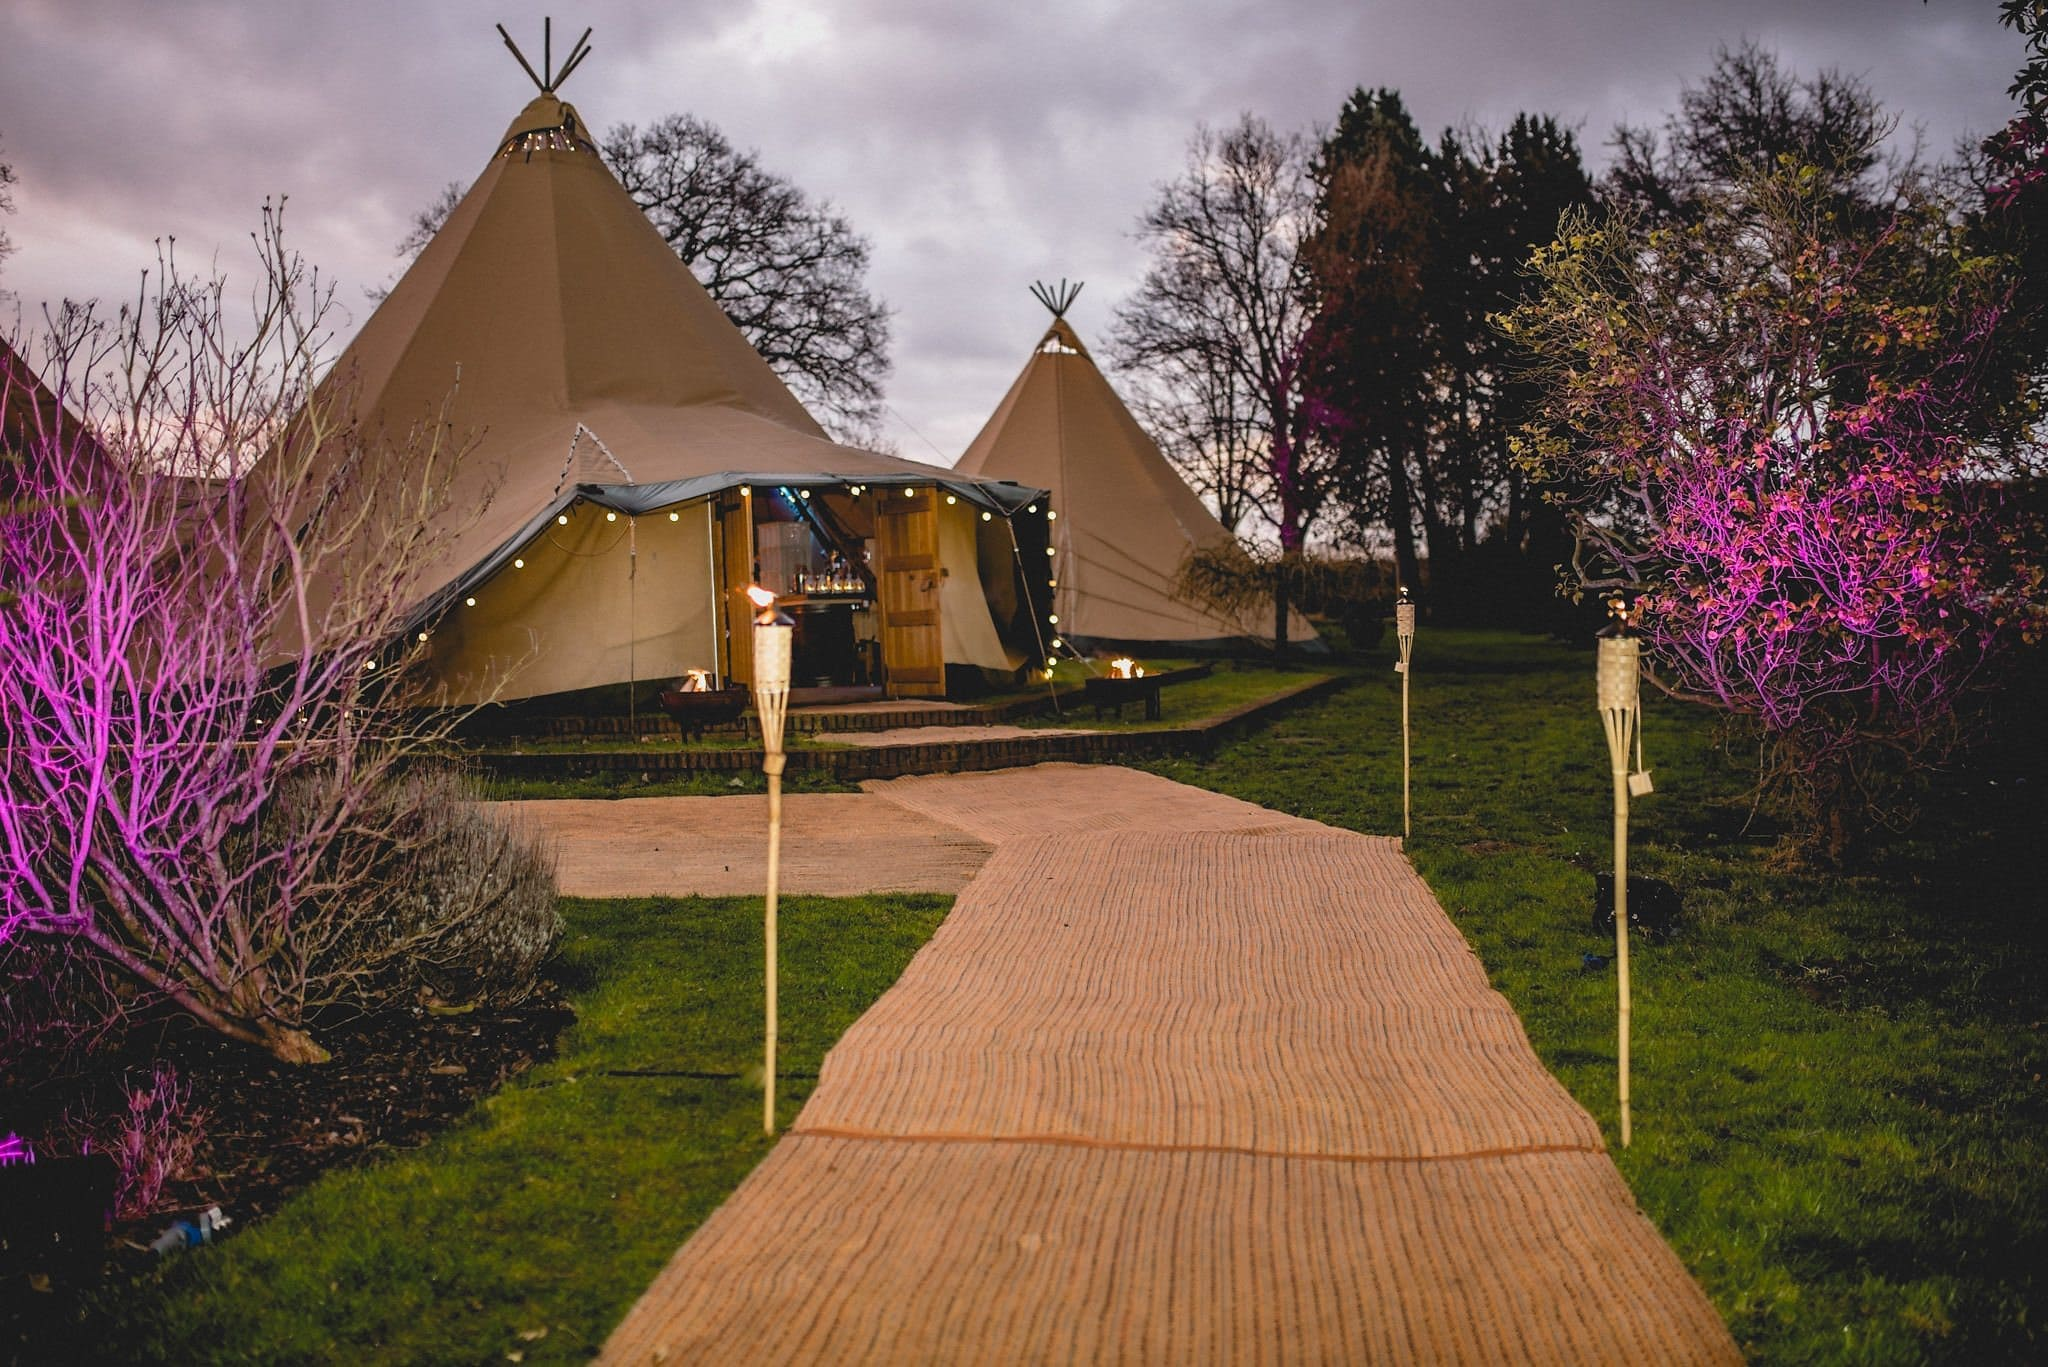 The walkway up to the tipi, complete with flaming torches